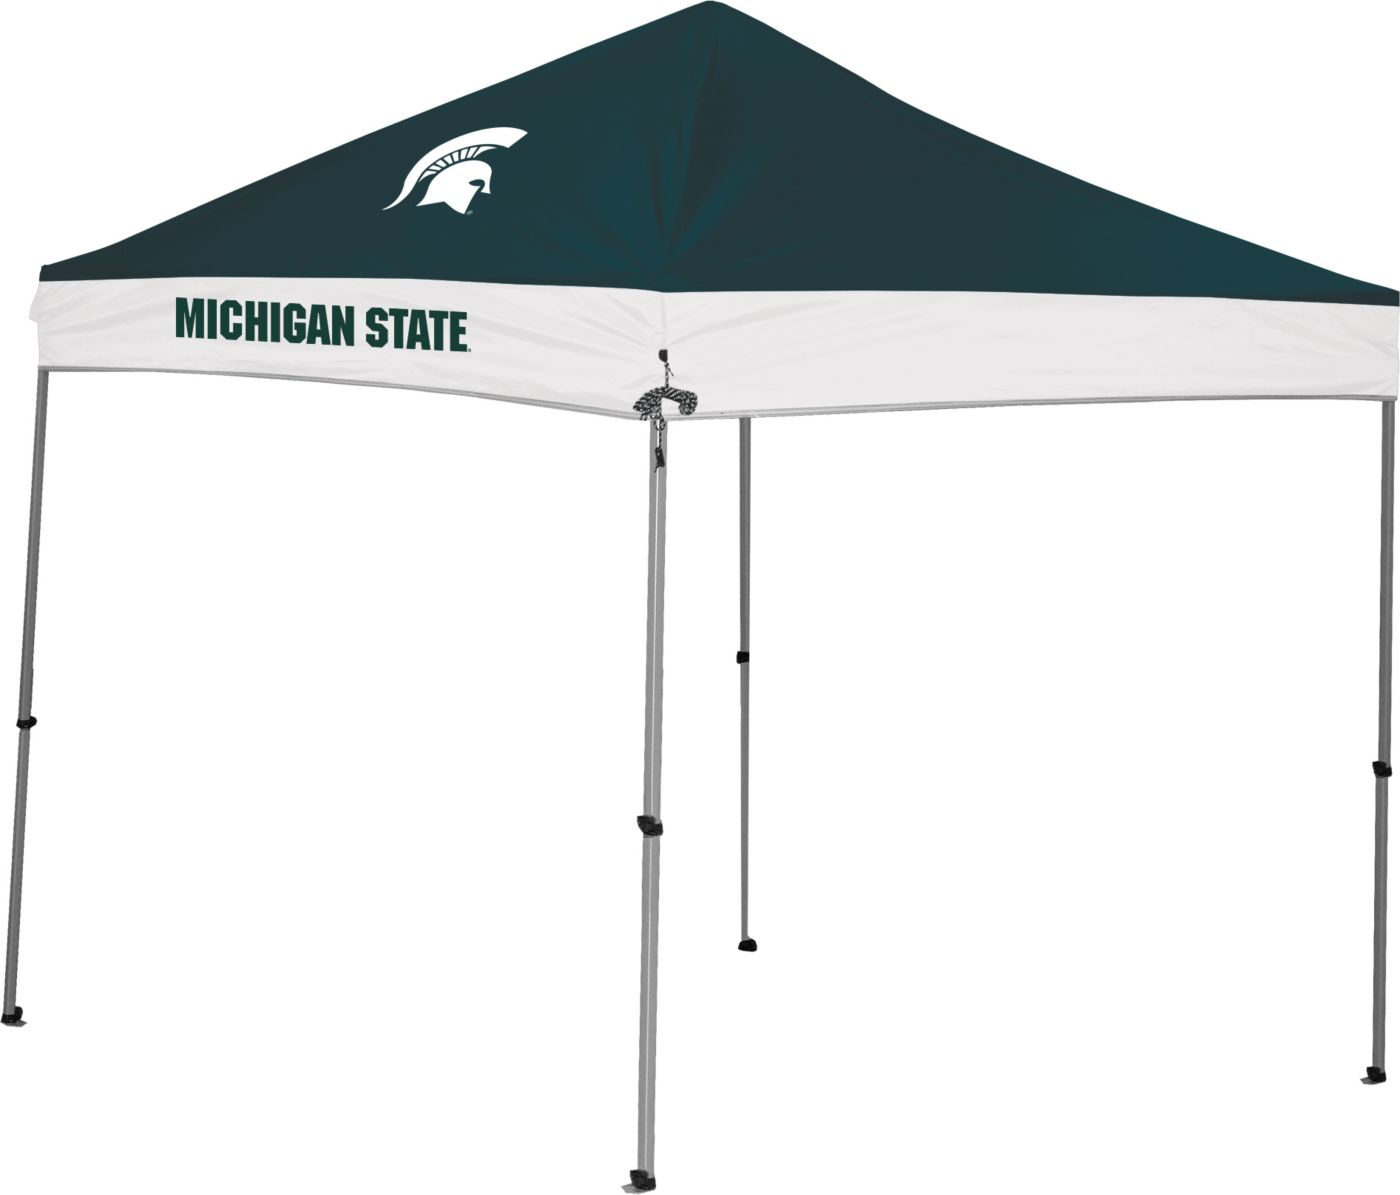 Rawlings Michigan State Spartans 9' x 9' Sideline Canopy Tent